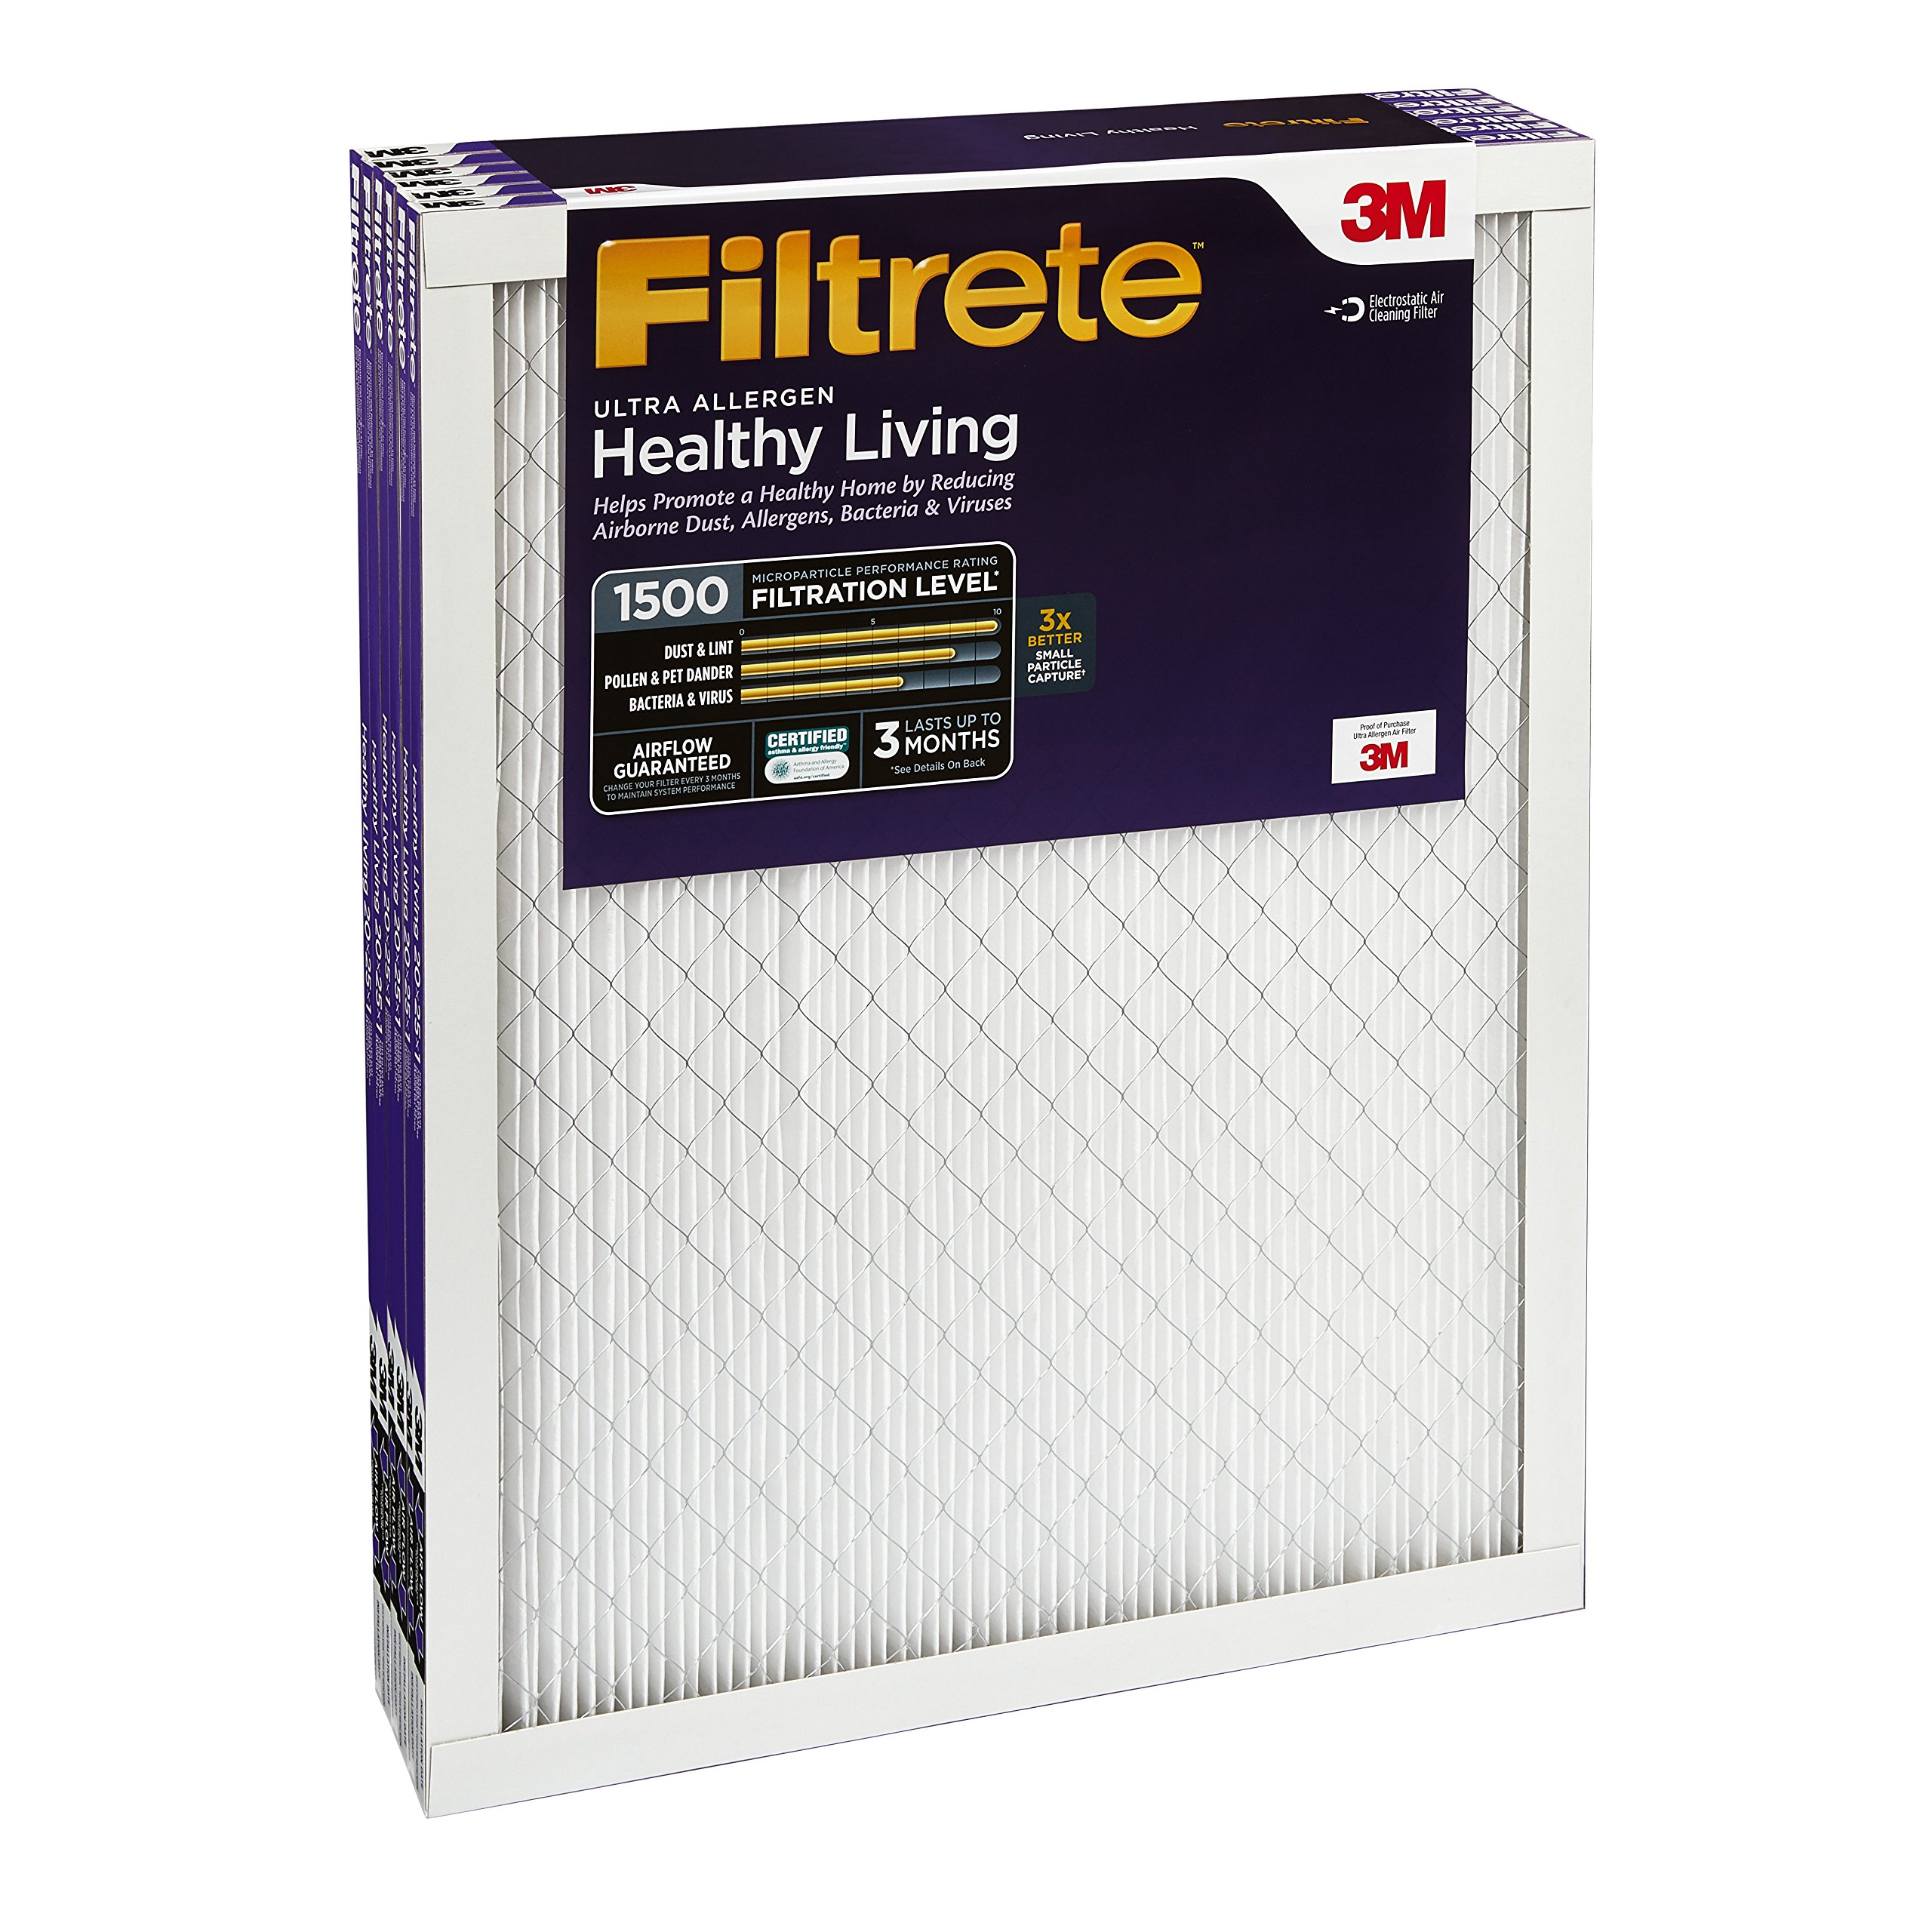 Filtrete MPR 1500 12 x 24 x 1 Healthy Living Ultra Allergen Reduction HVAC Air Filter, 6-Pack by 3M (Image #3)